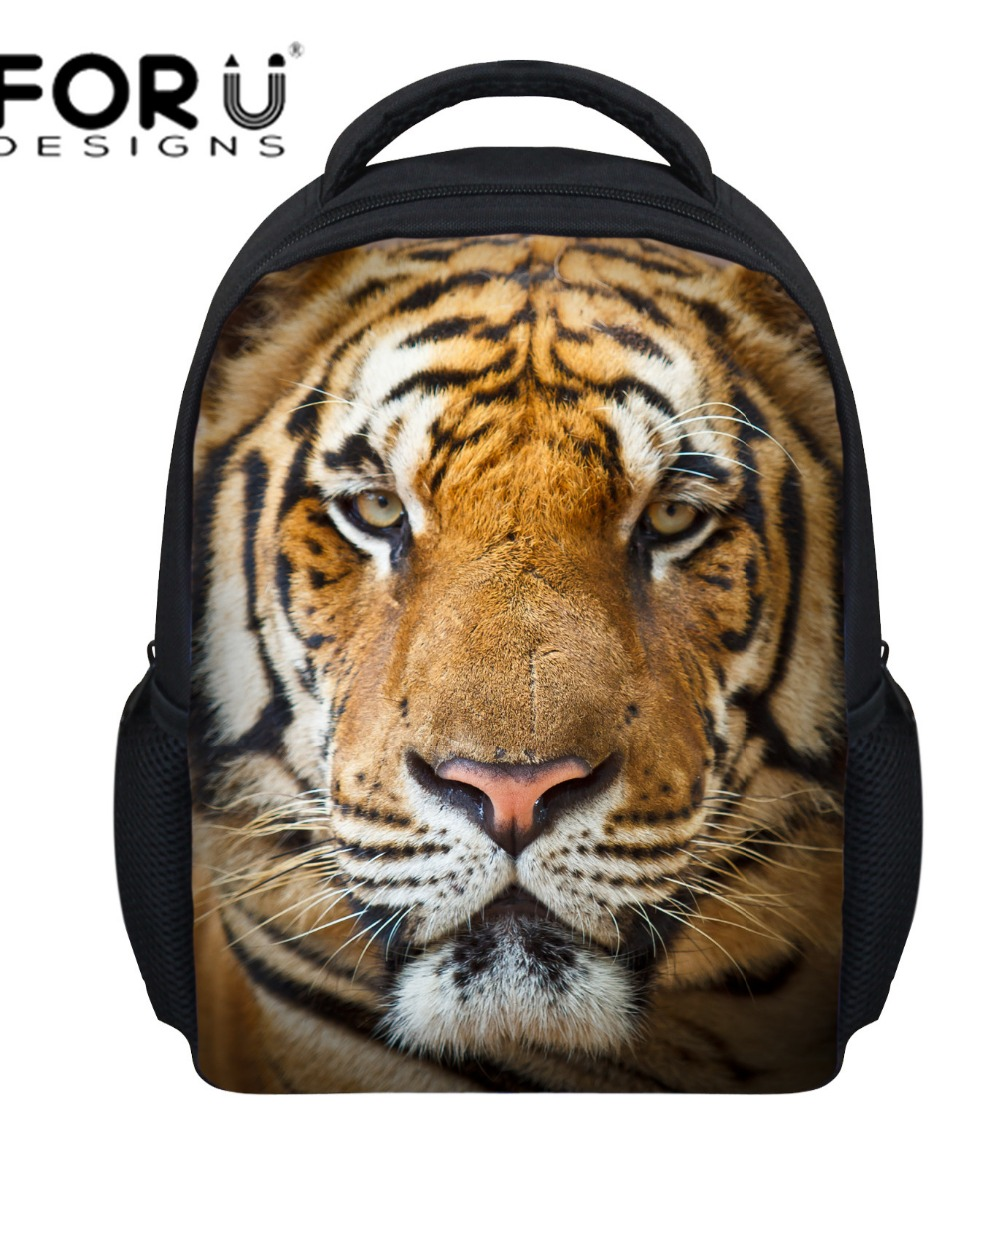 mini 3d zoo animal backpack for kids small kindergarten baby bagpack cool tiger head backpack children school bags free shipping